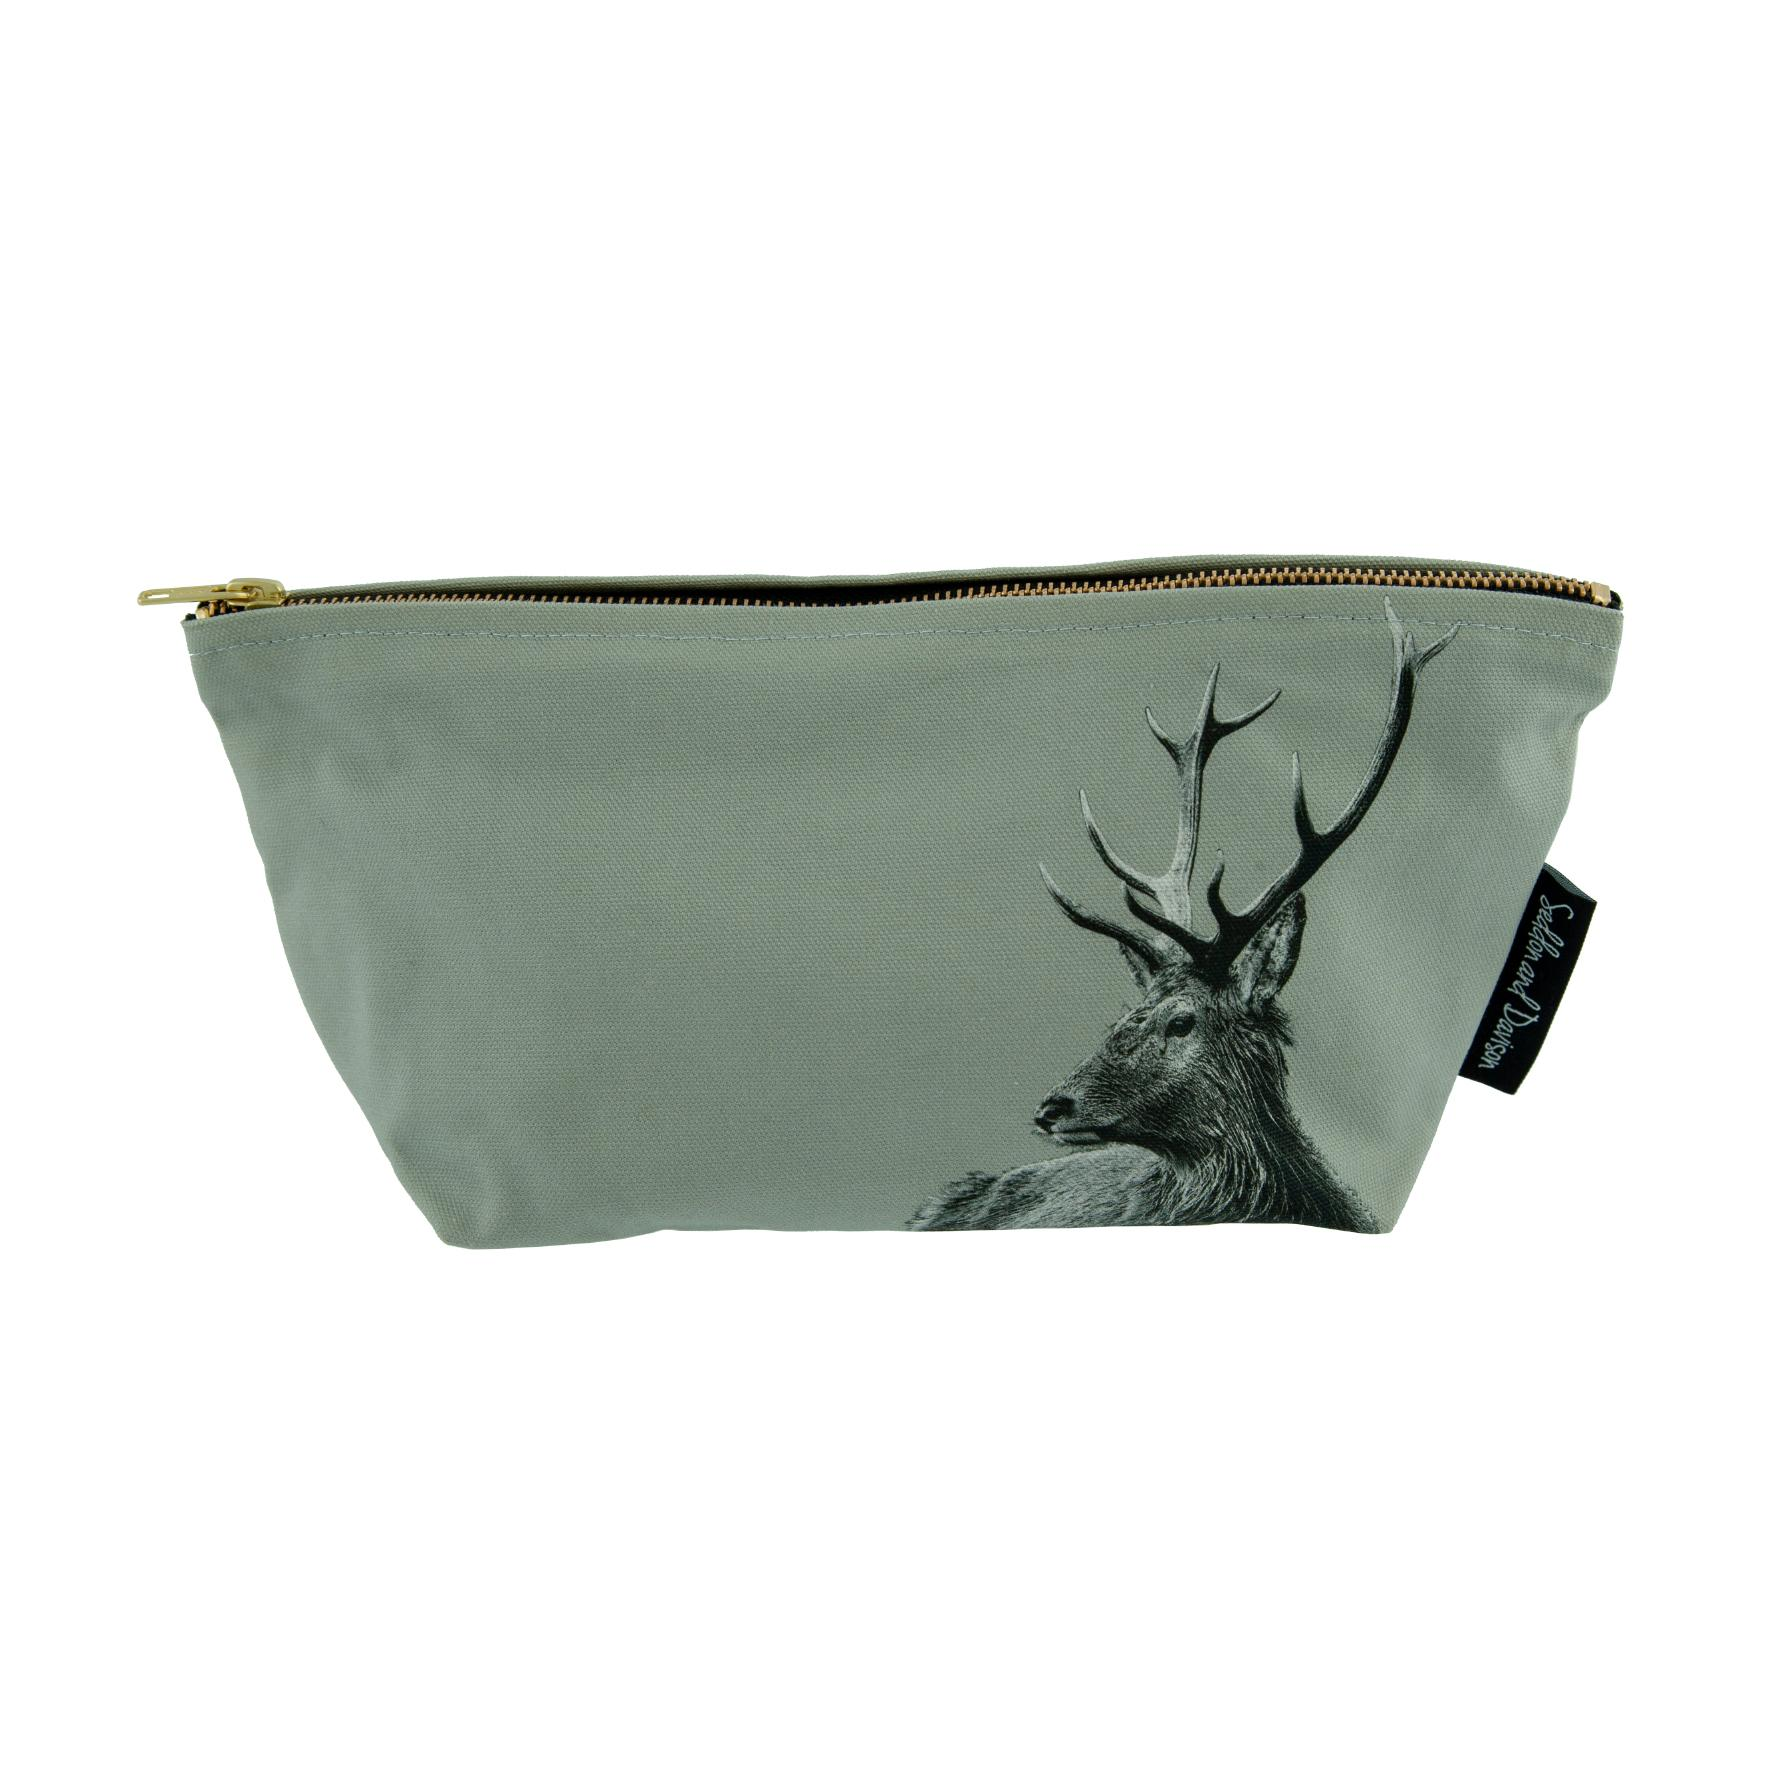 Highland Stag wash bag on sage grey